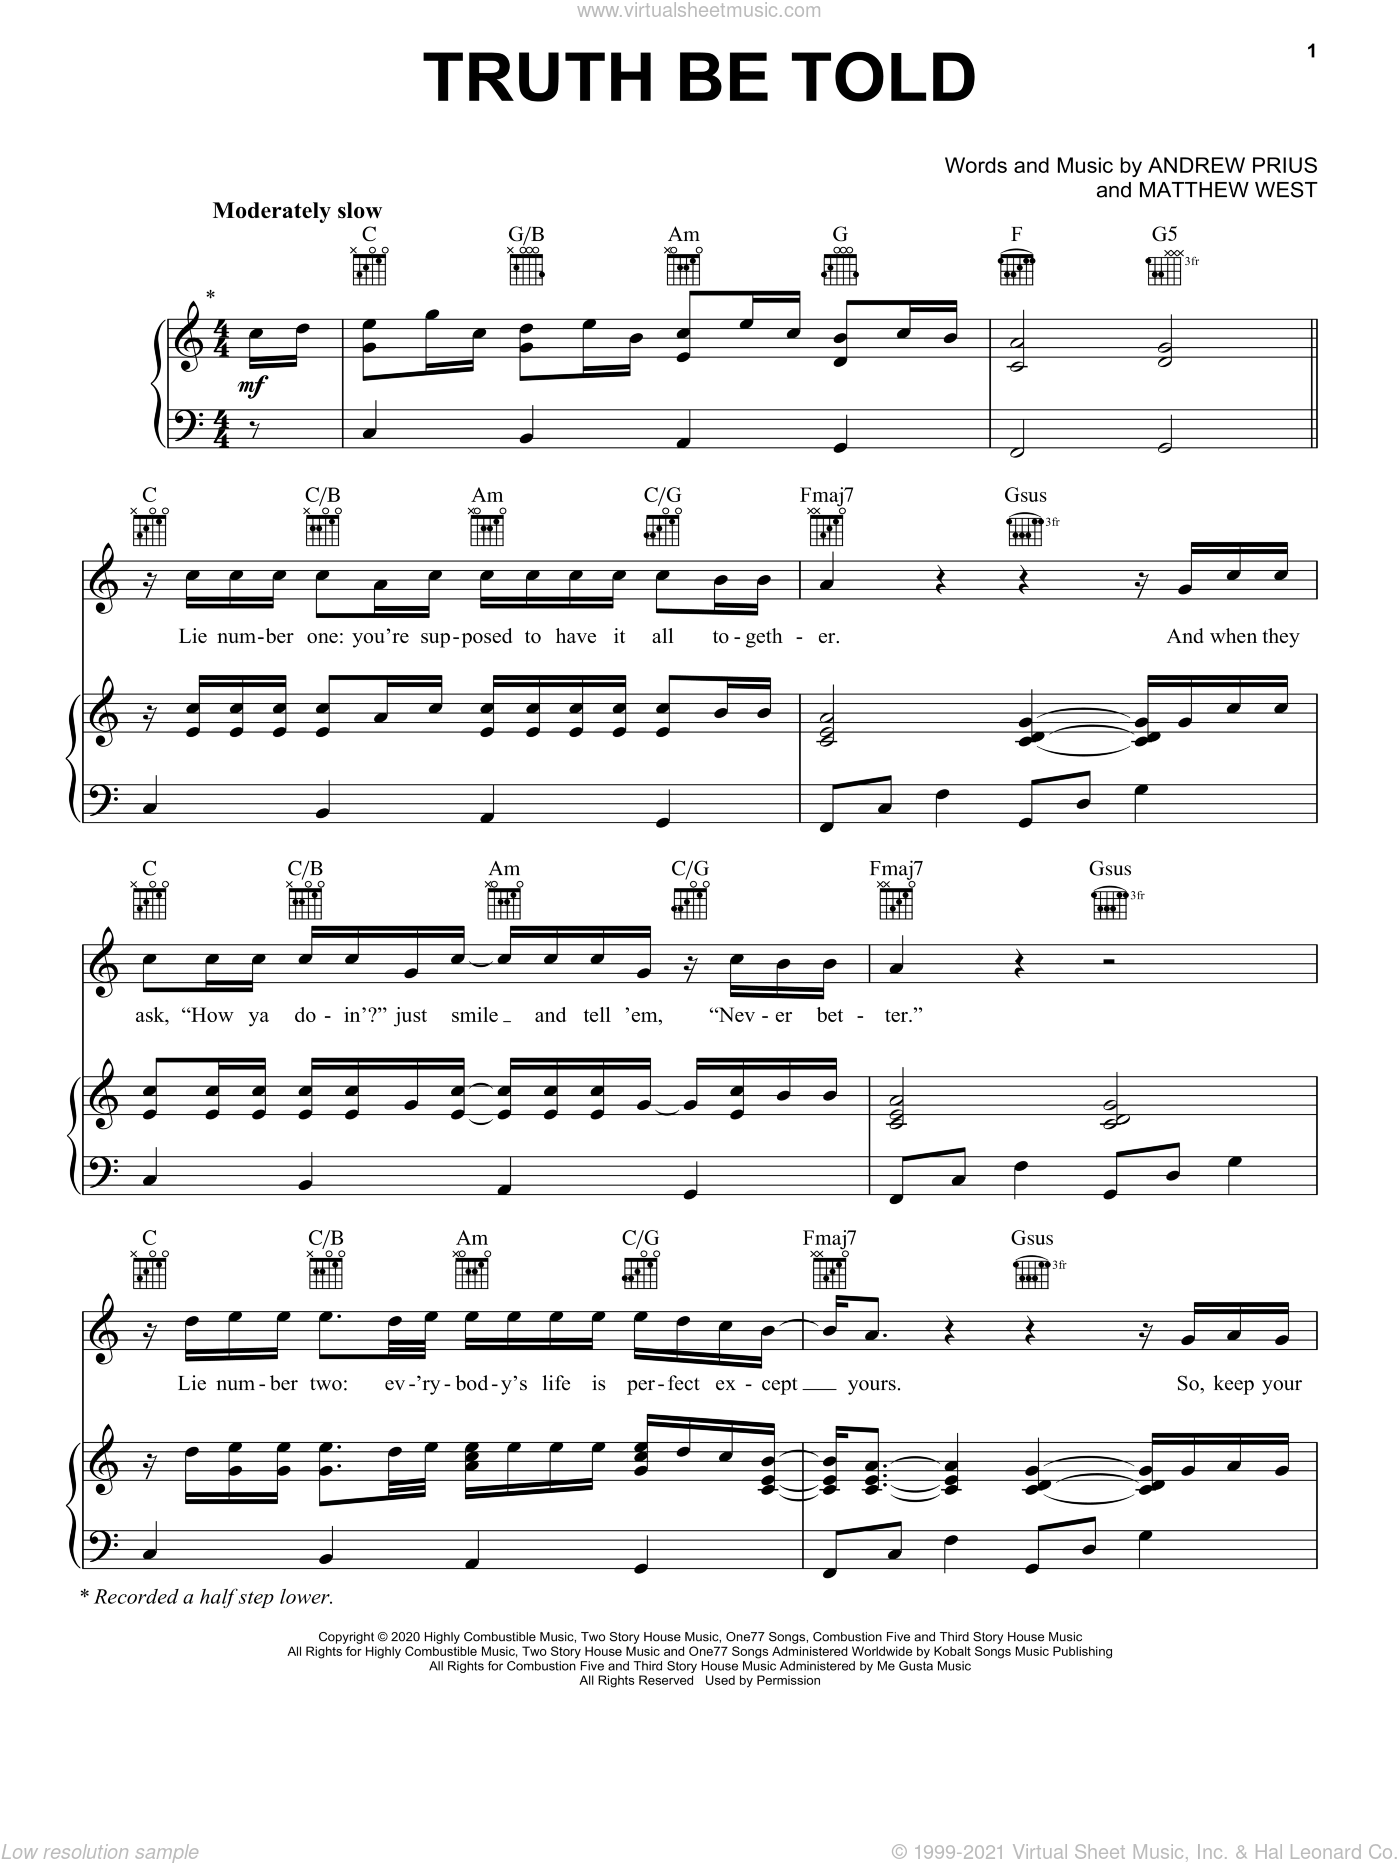 Truth Be Told sheet music for voice, piano or guitar by Matthew West and Andrew Pruis, intermediate skill level